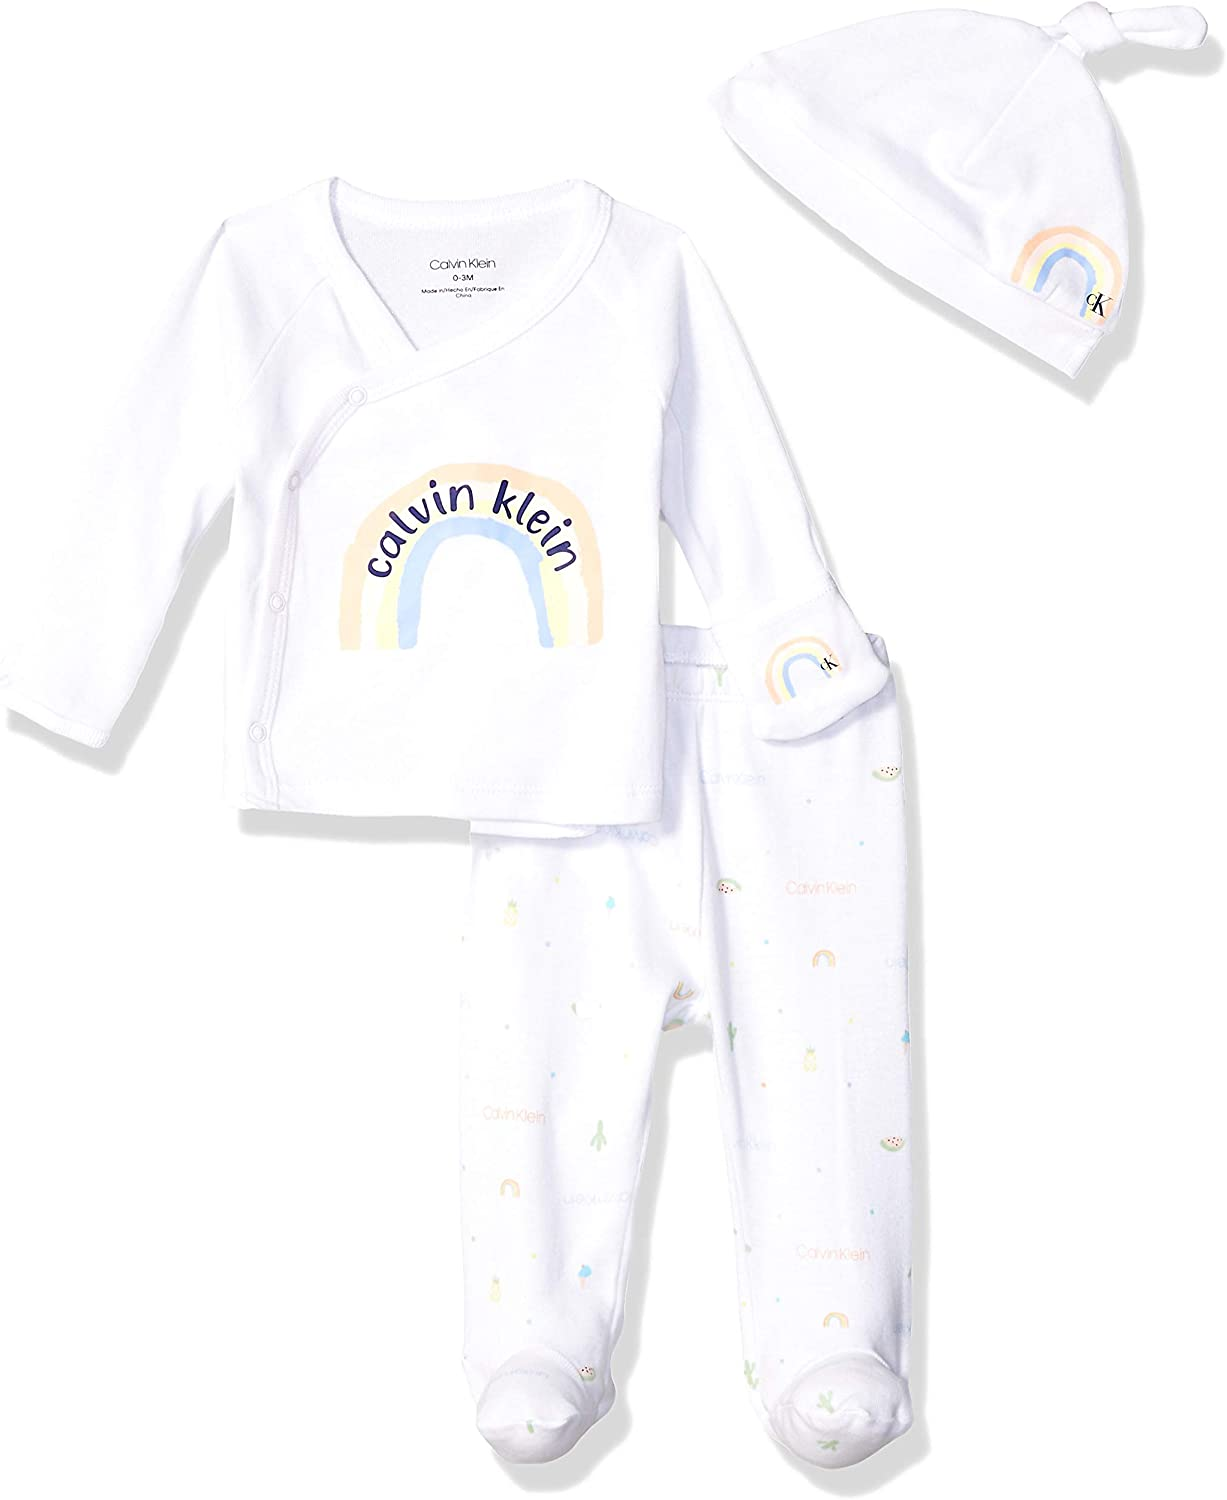 Calvin Klein Baby Newborn Take Me Home Set, Multi-Piece